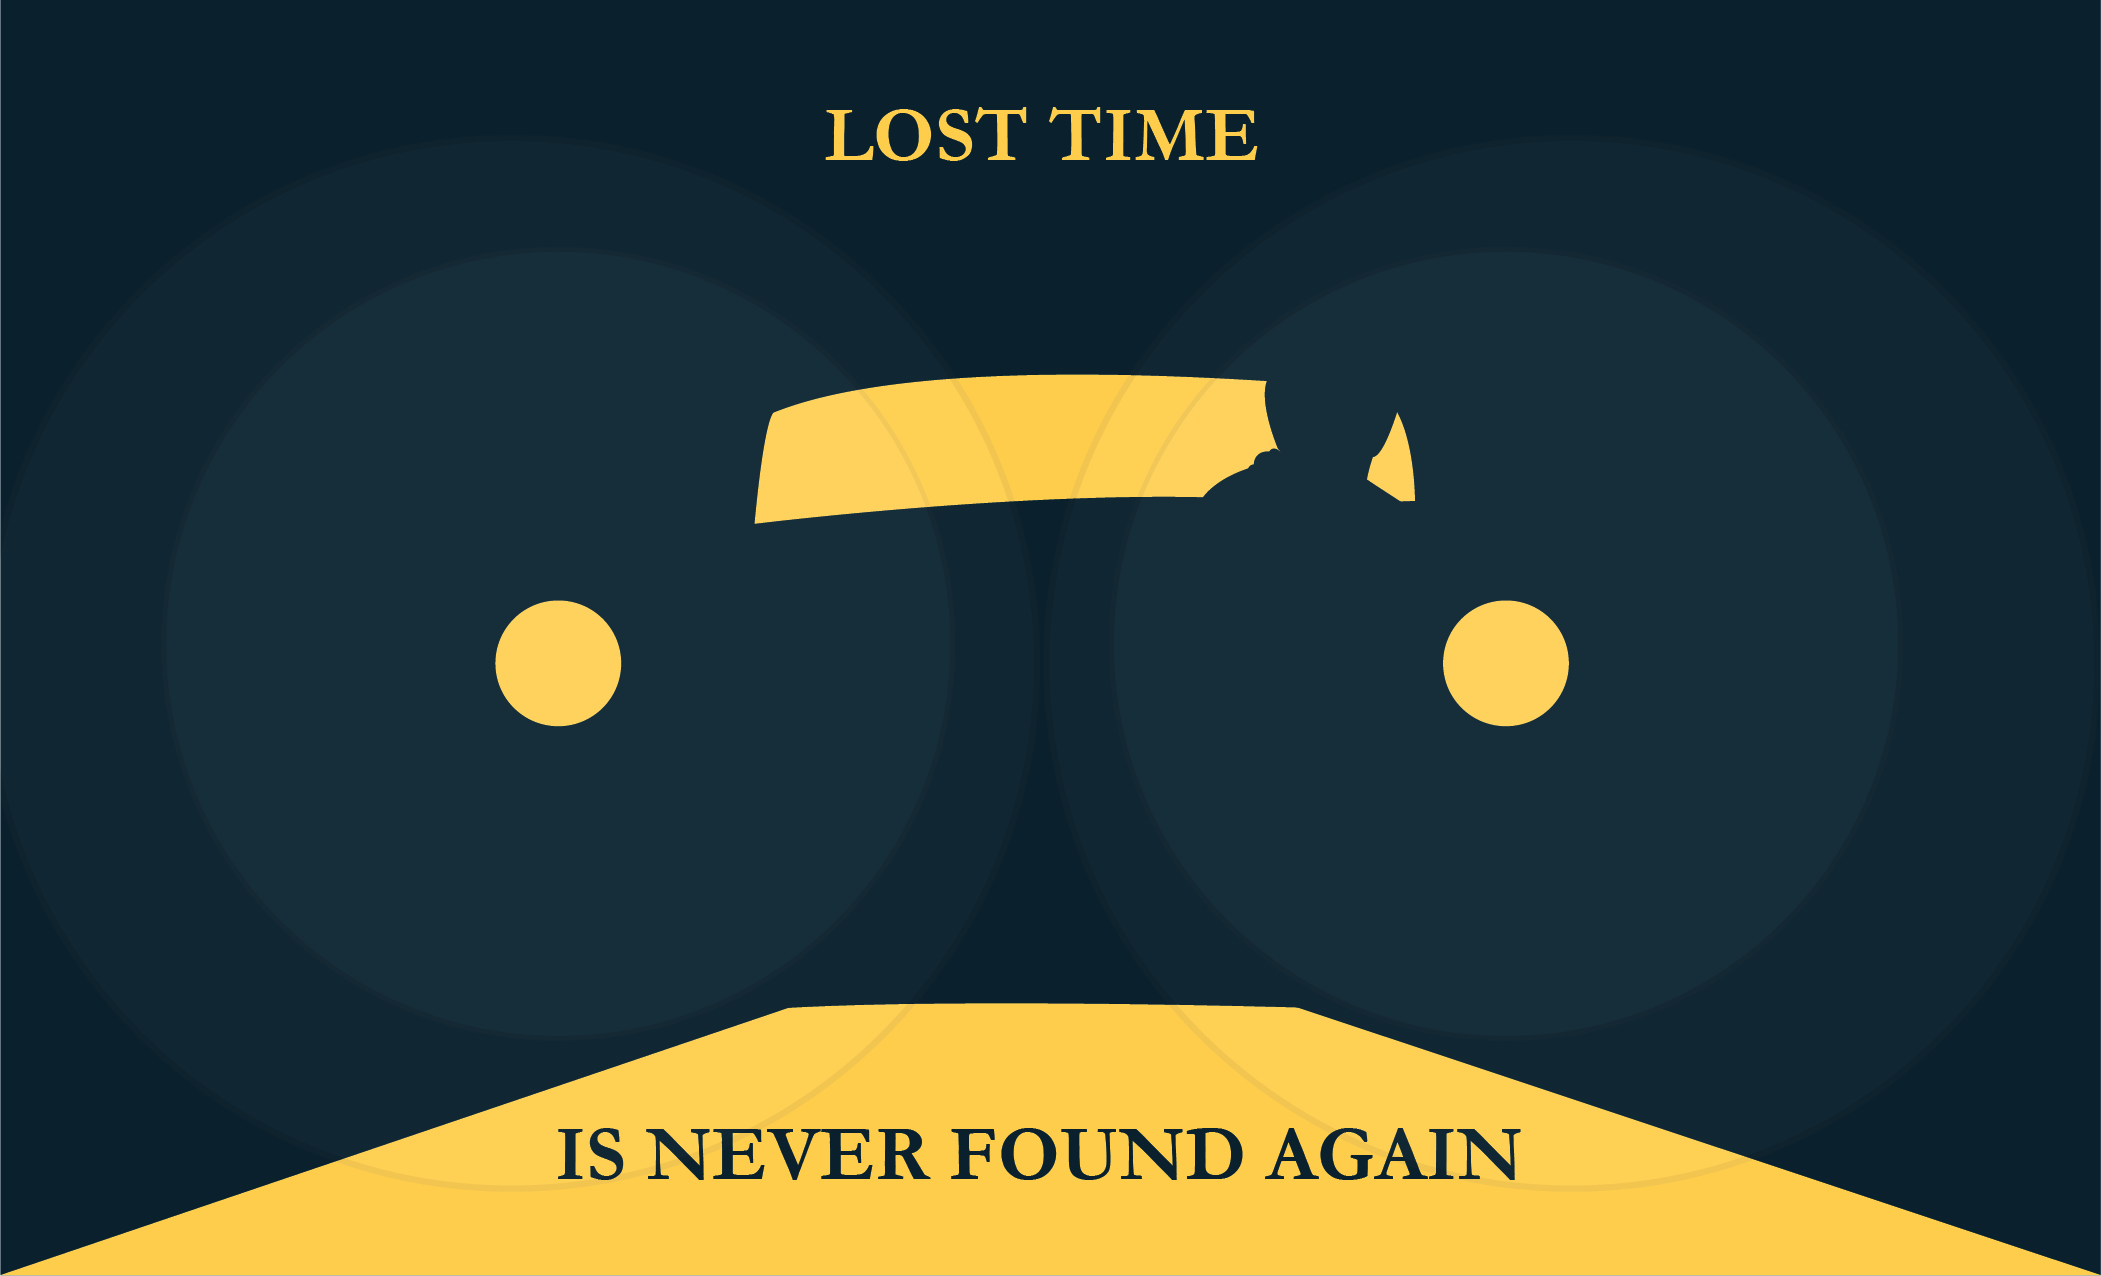 LOST TIME IS NEVER FOUND AGAIN-24.jpg